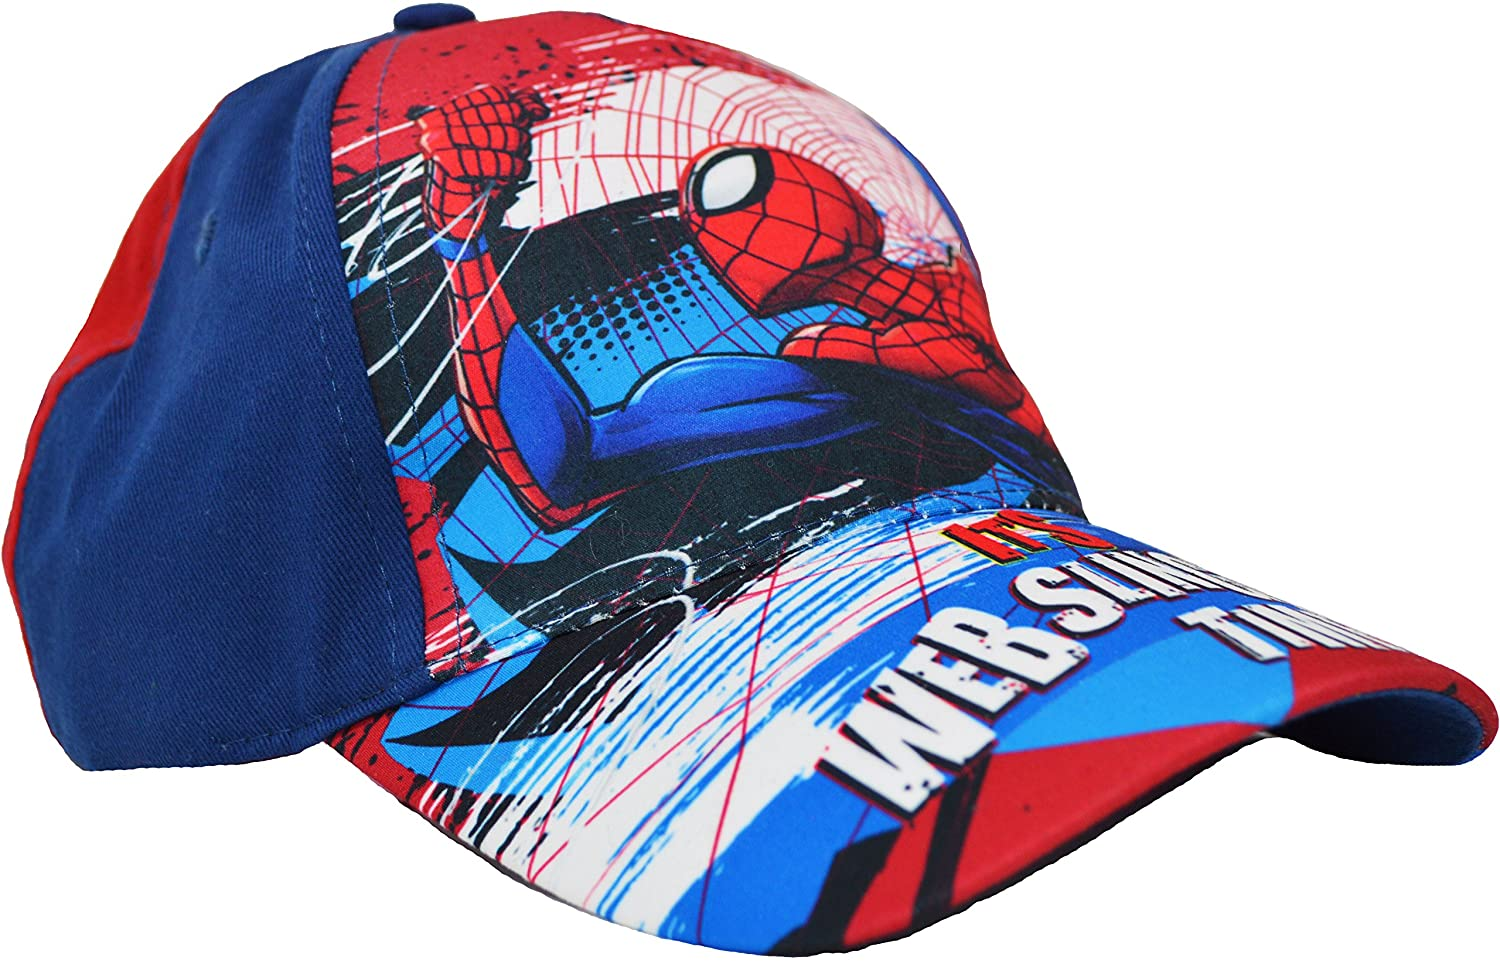 898f91a42629cf Spiderman Cap Boys Kids Marvel Baseball Cap Summer Hat (2-4 Years (52cm),  Red): Amazon.co.uk: Clothing